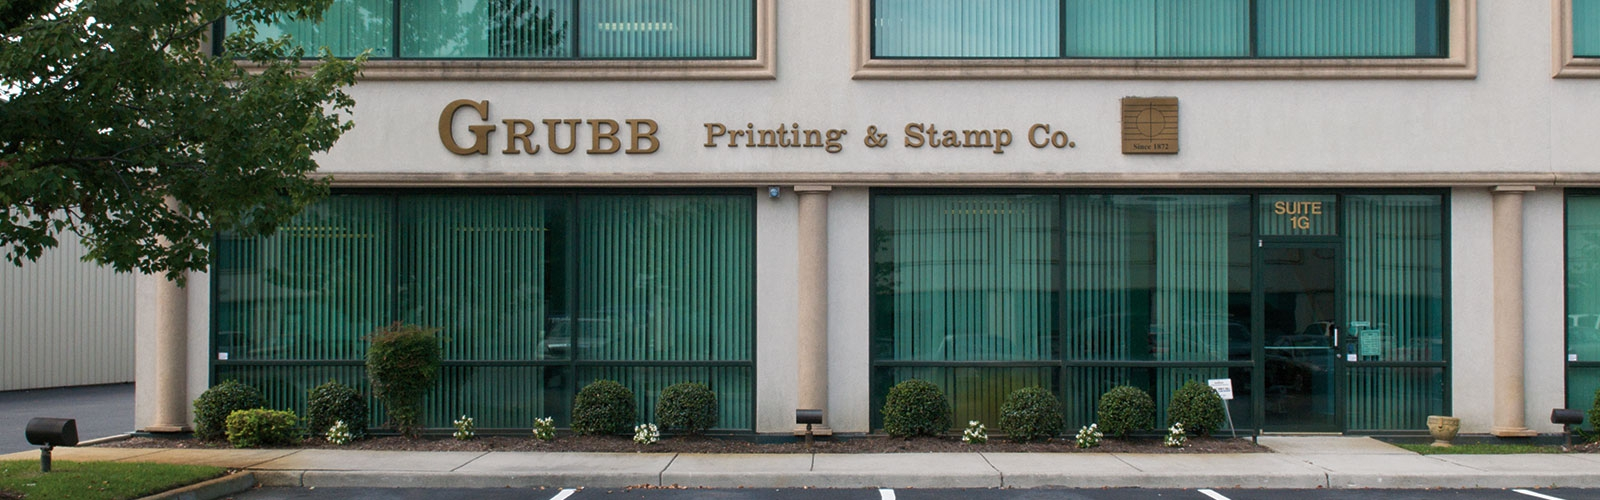 Contact Grubb Printing & Stamp Company